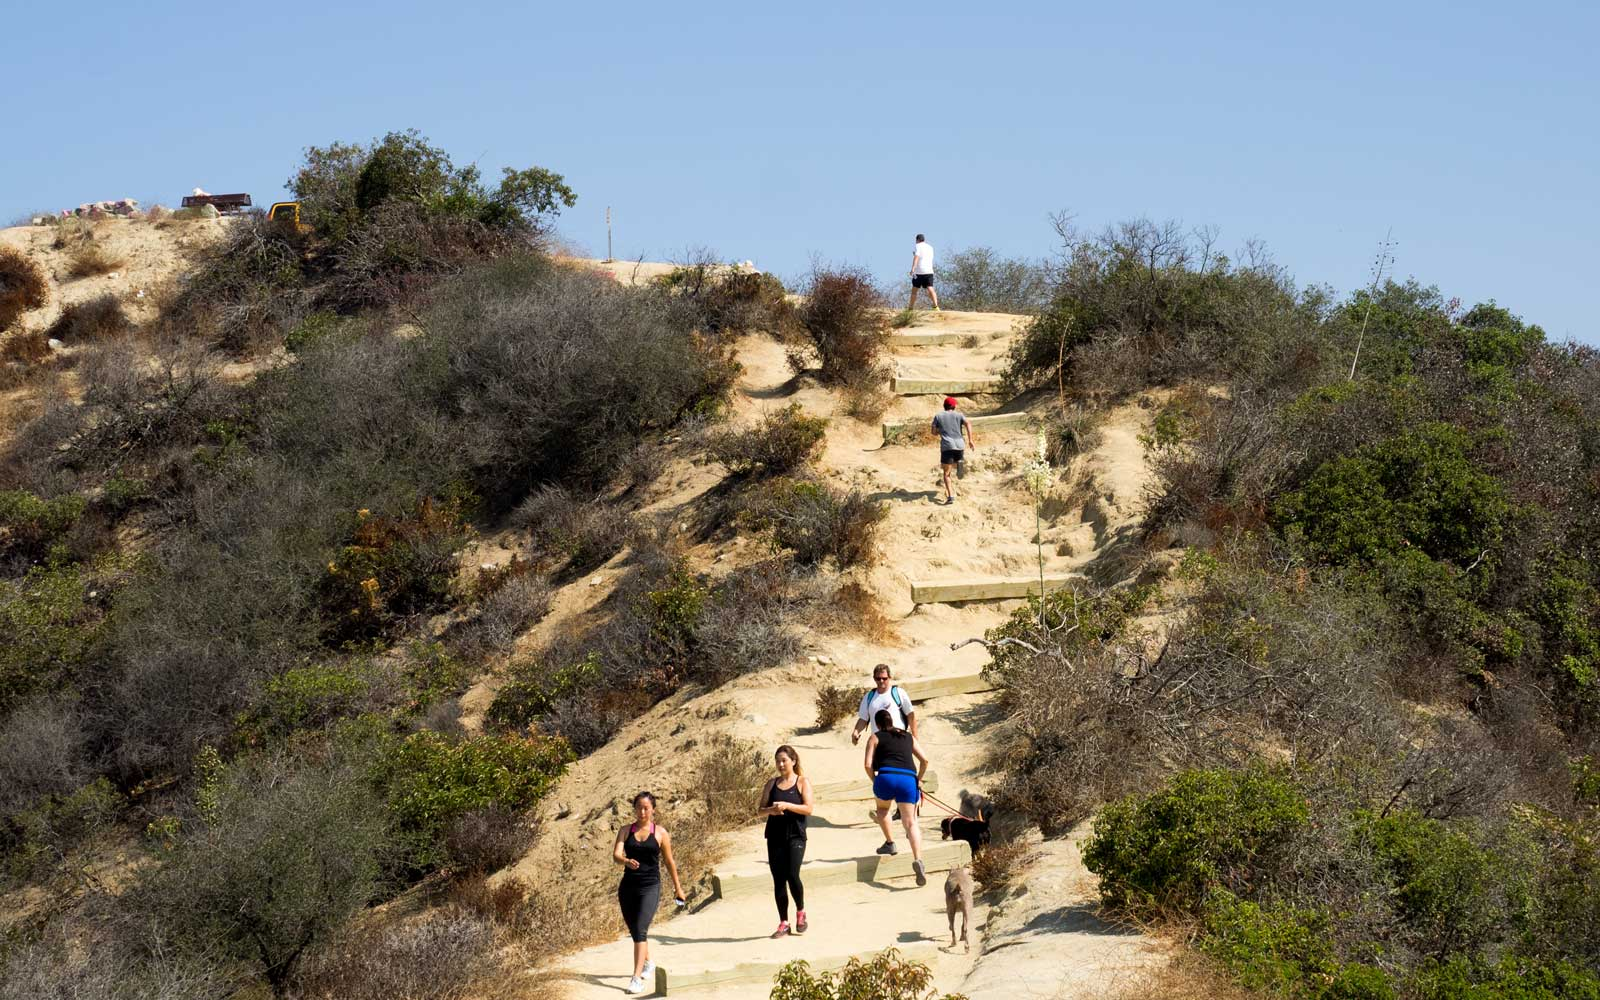 A view of the re-opening of Runyon Canyon in Hollywood. on August 02, 2016 in Los Angeles, California.